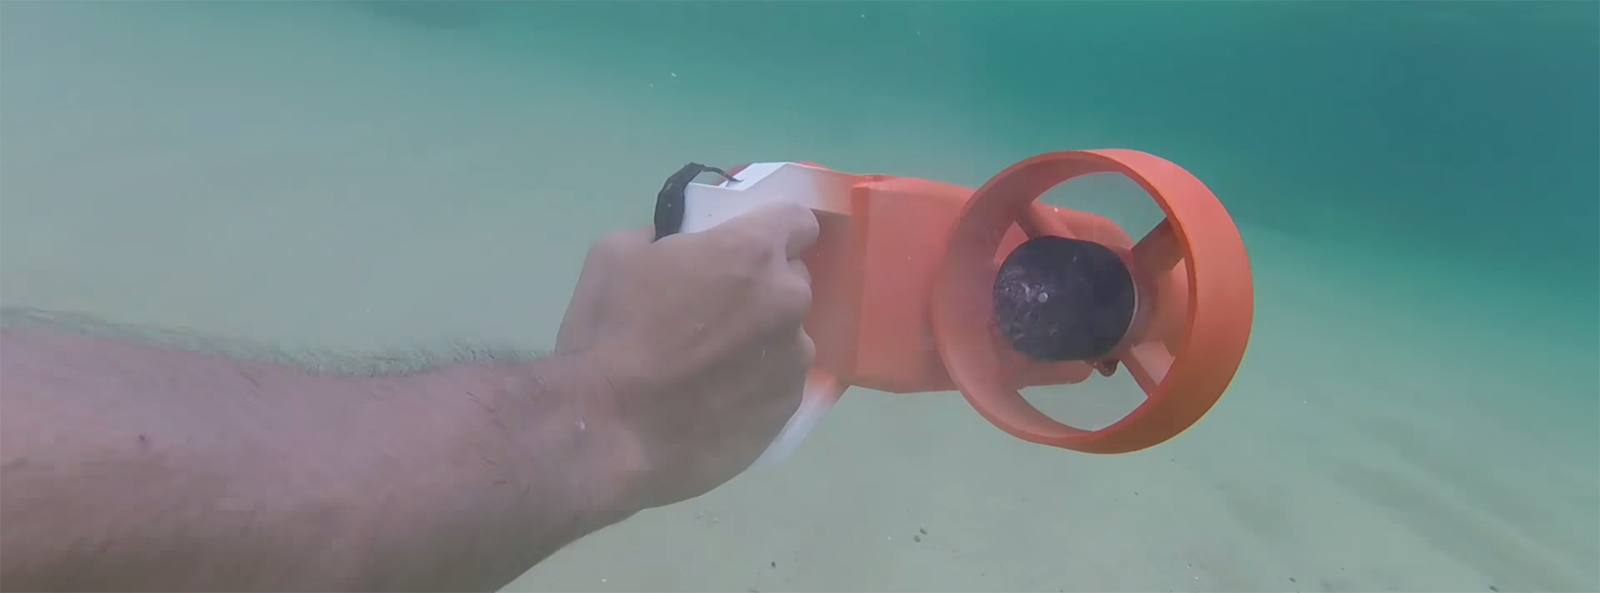 The Almost Working, DIY Underwater Scooter Pistol Thing